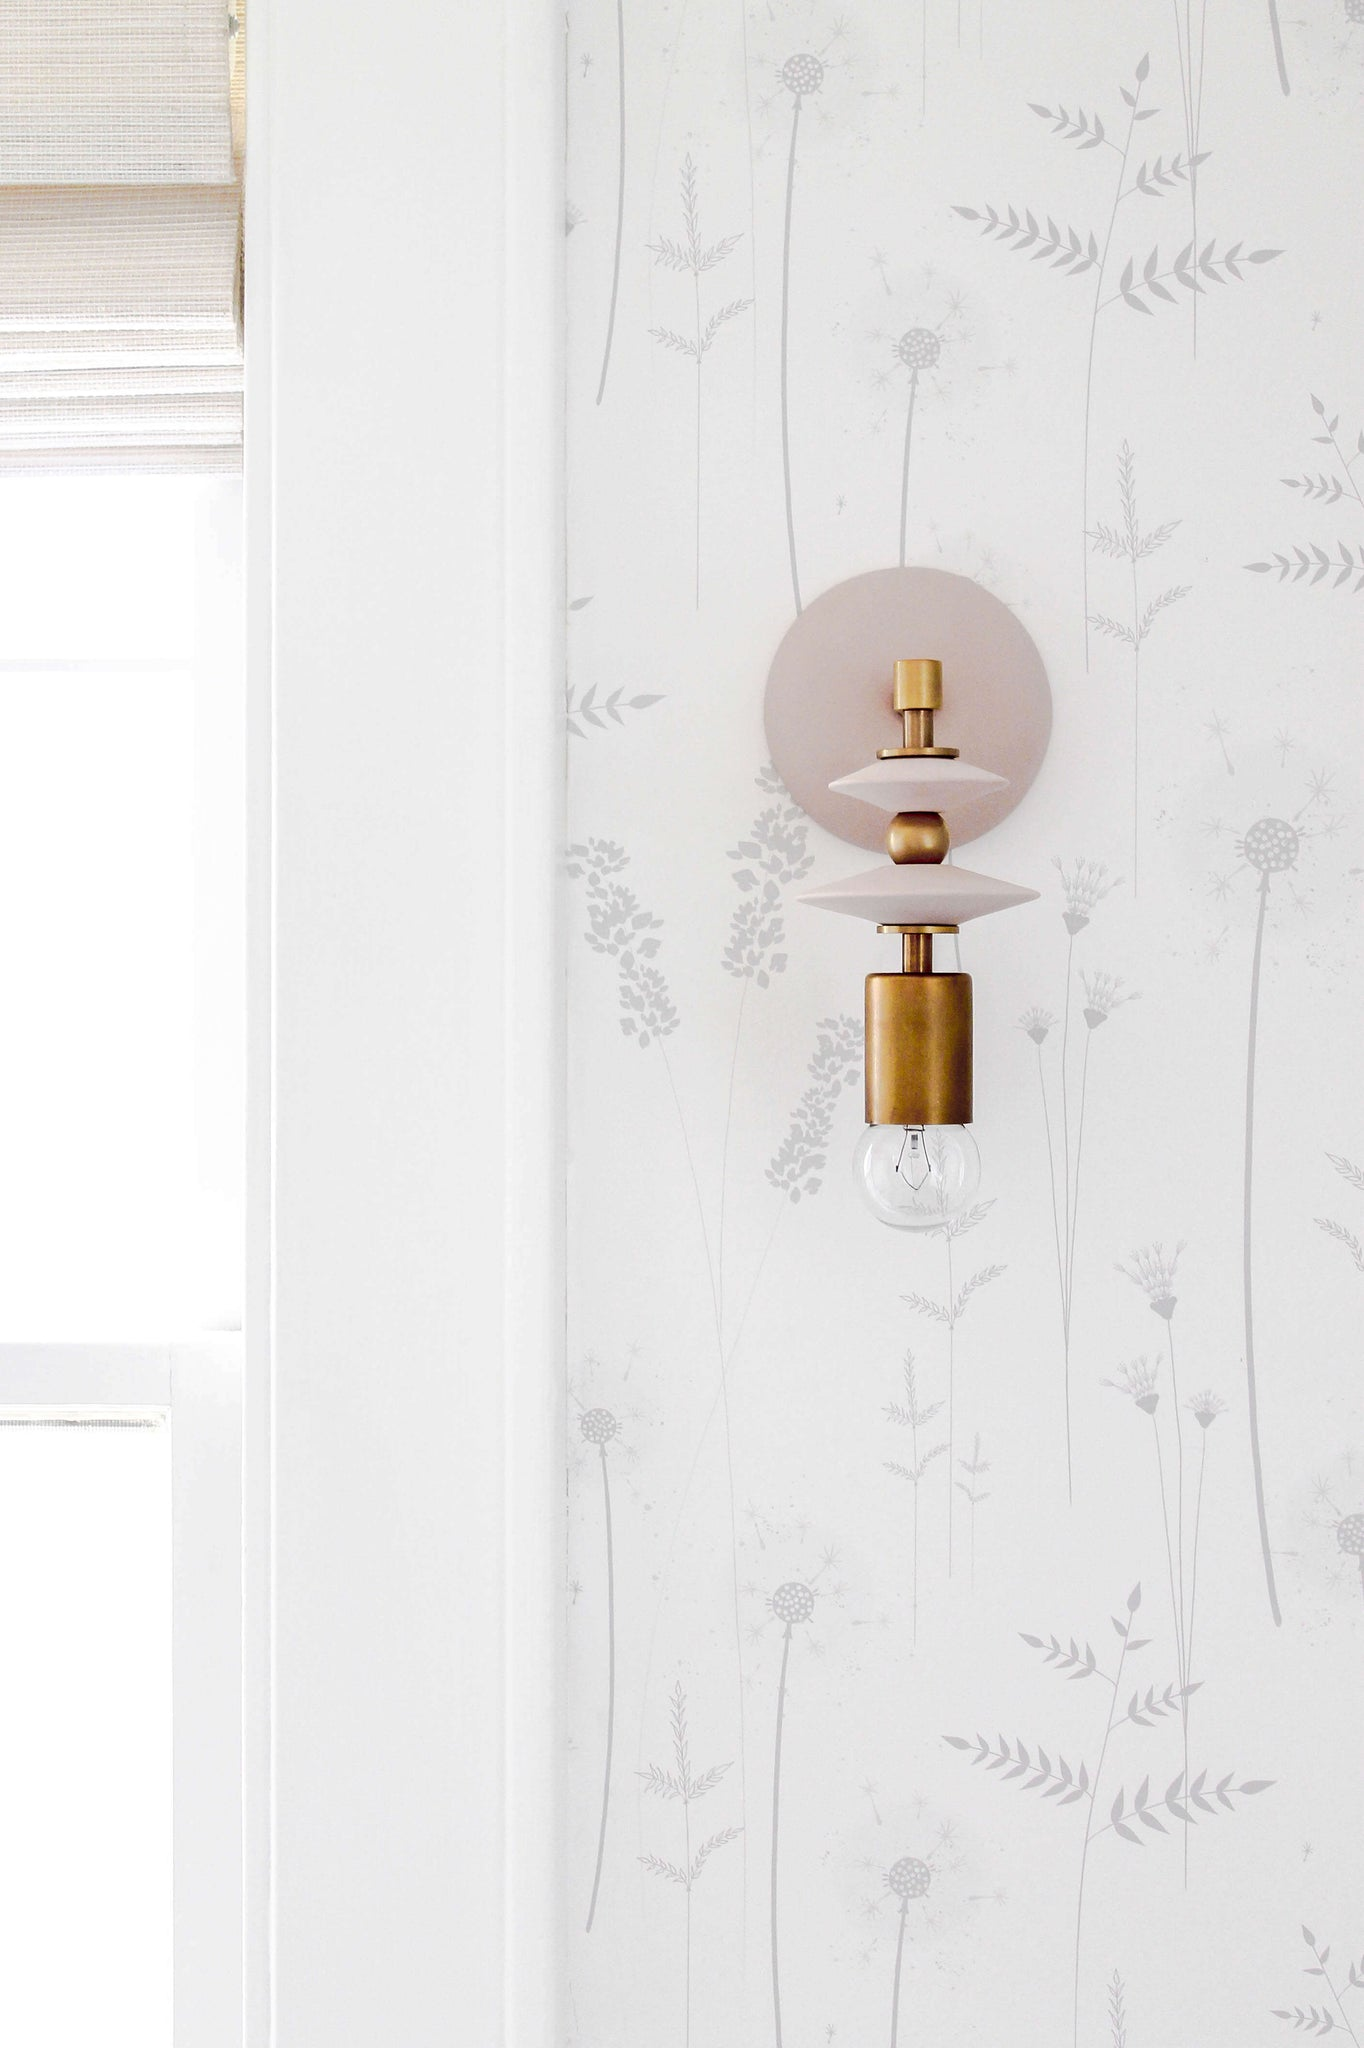 Modern geometric mid century wall sconces with blush pink and brass colors